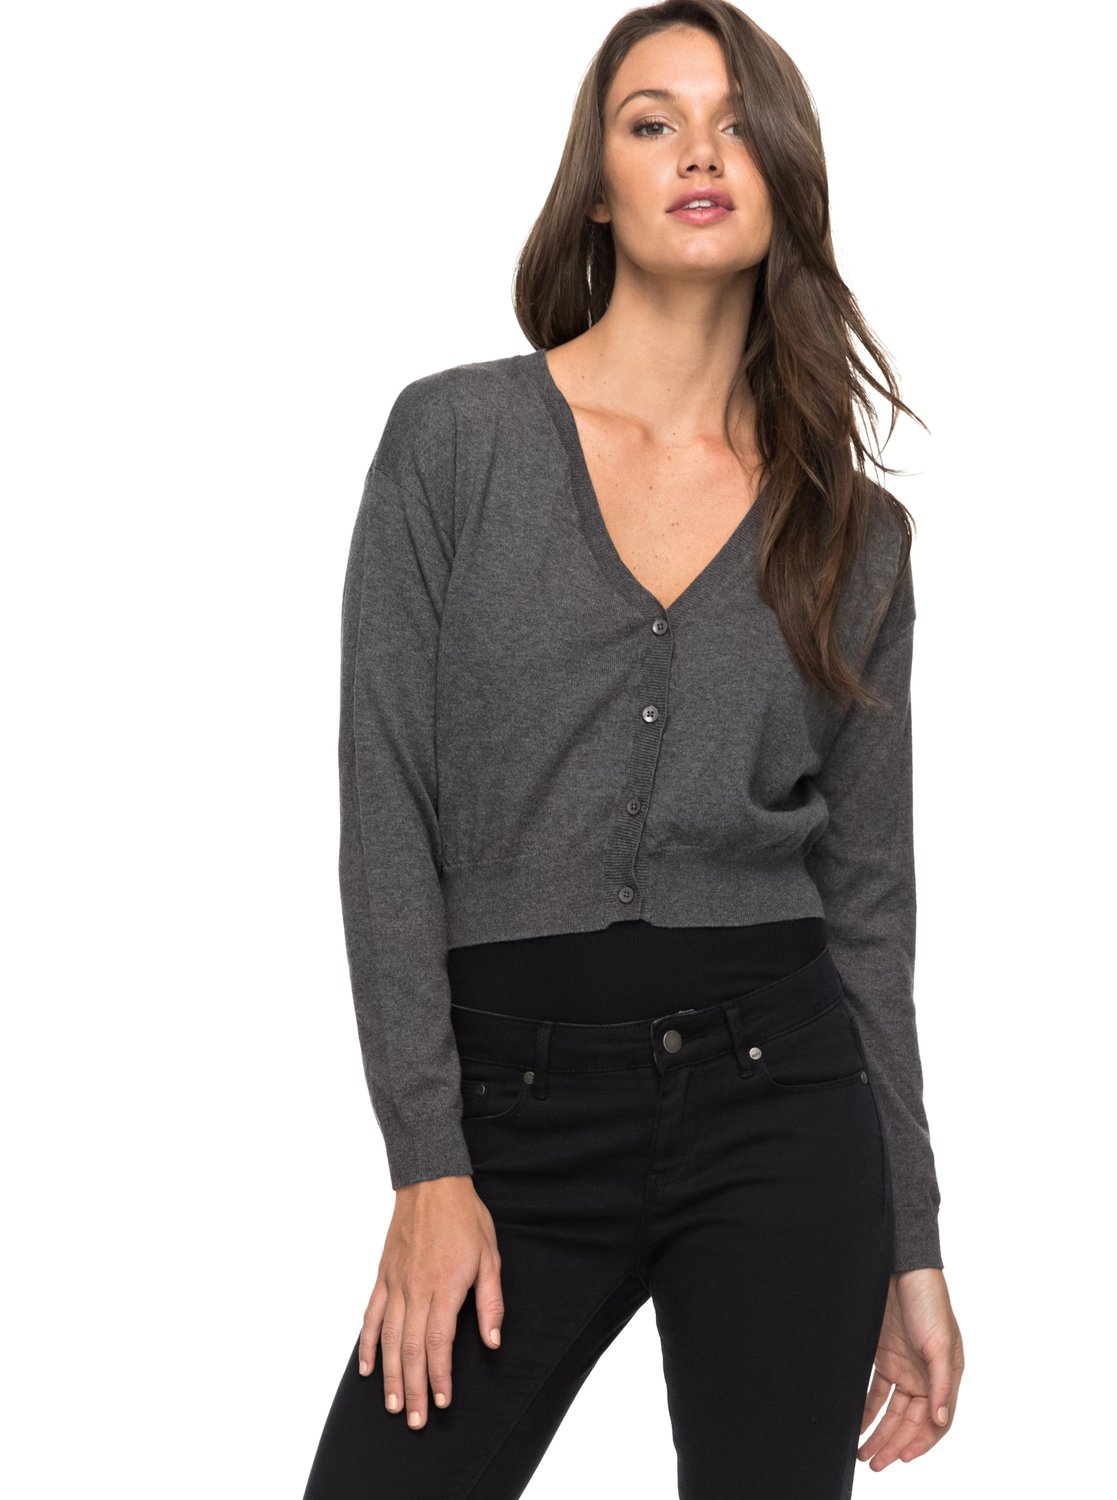 There are long sweaters when you just want to cover everything, v-neck sweaters when you want to take a plunge, sweater dresses for when you just want to be cozy from top to bottom, and cute turtleneck sweaters for when you want to keep things classy.